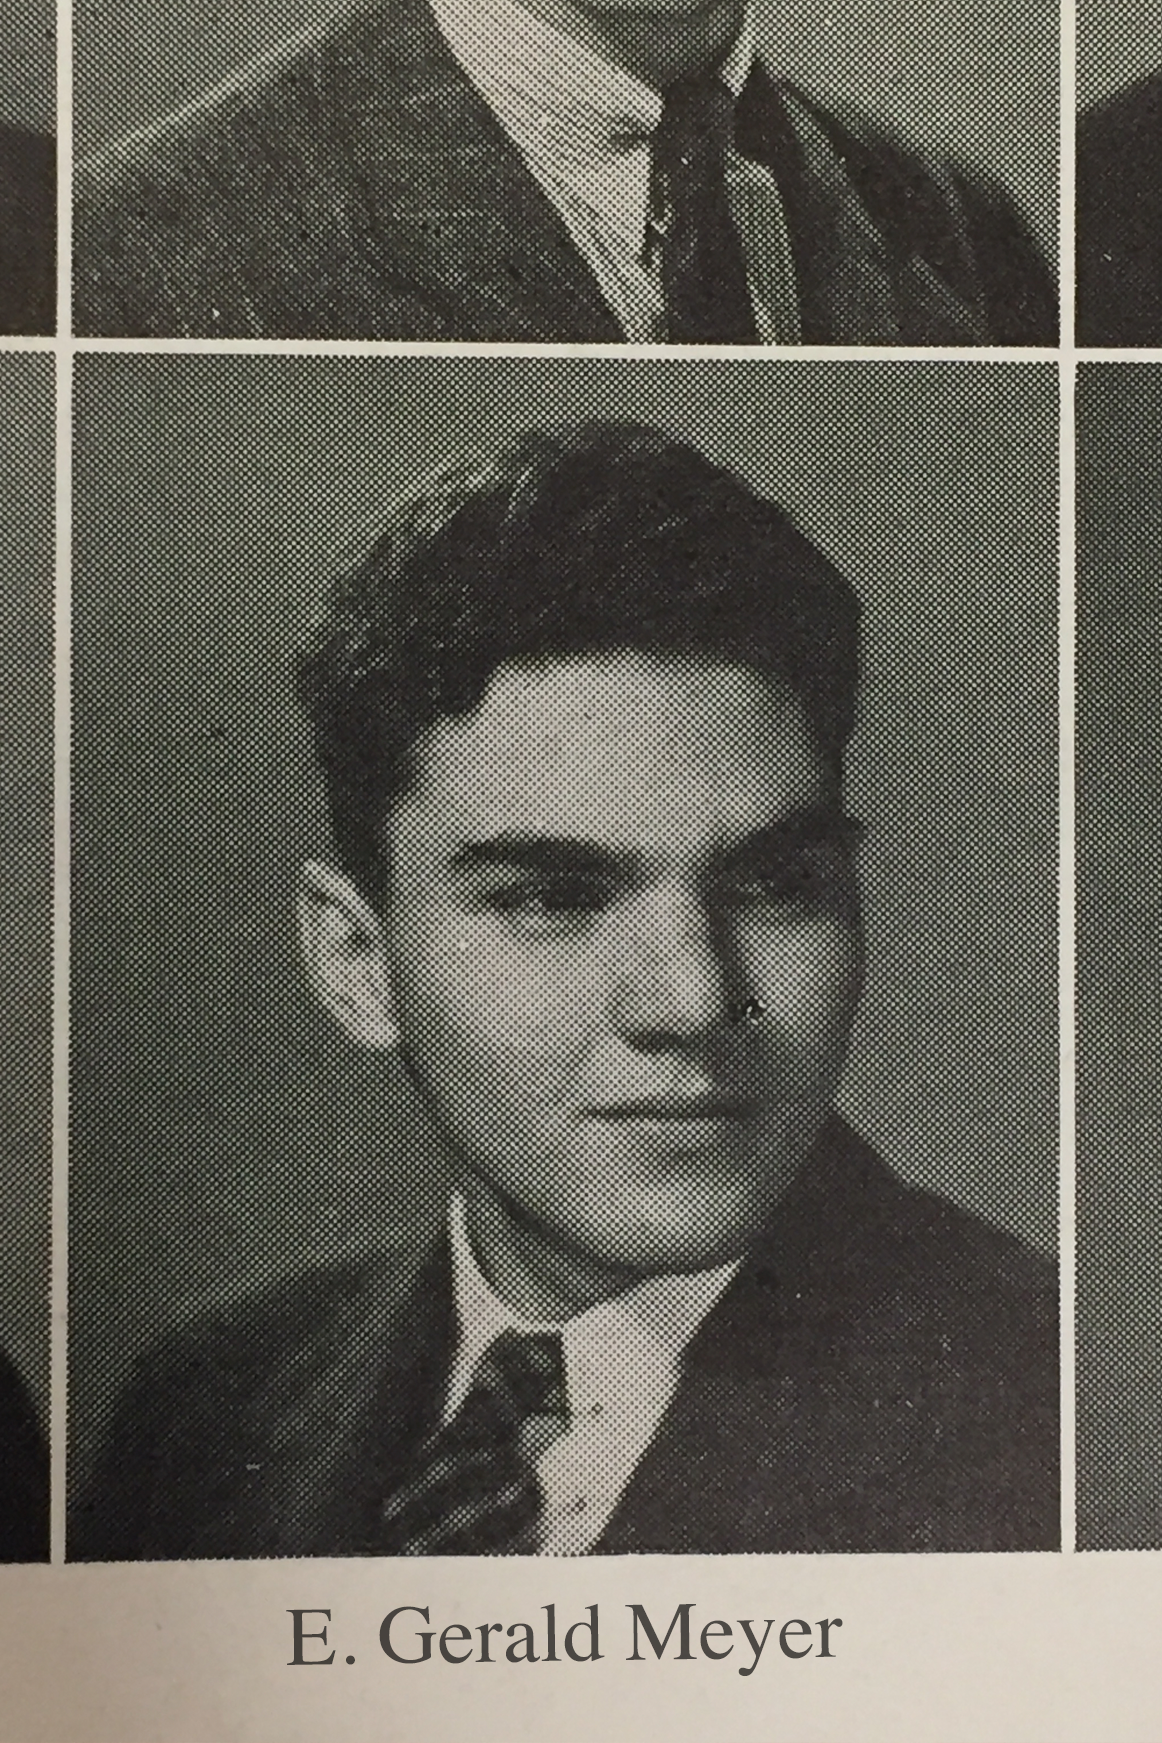 Old yearbook photo of Meyer